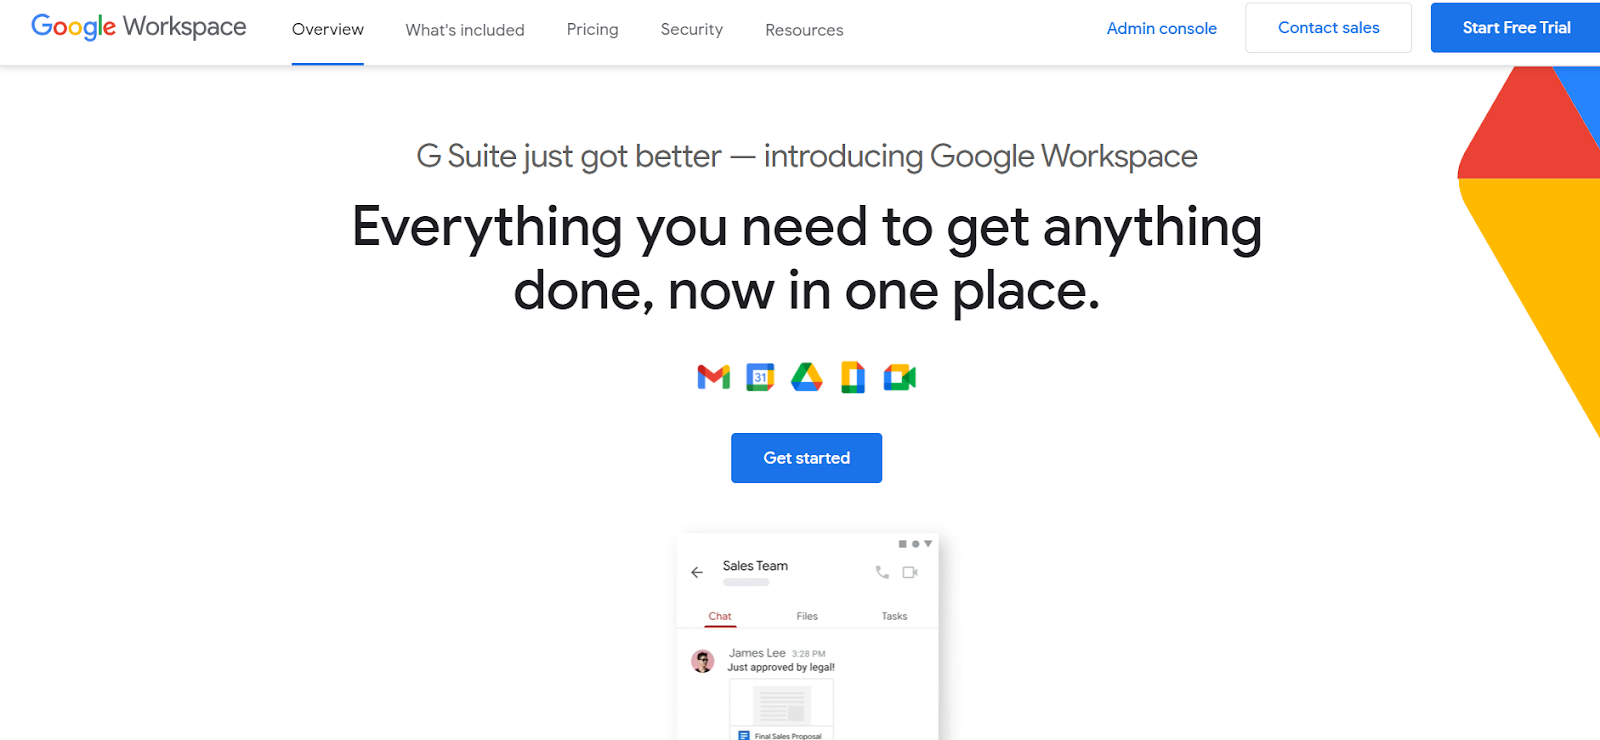 Google Workspace is an Application As A Service